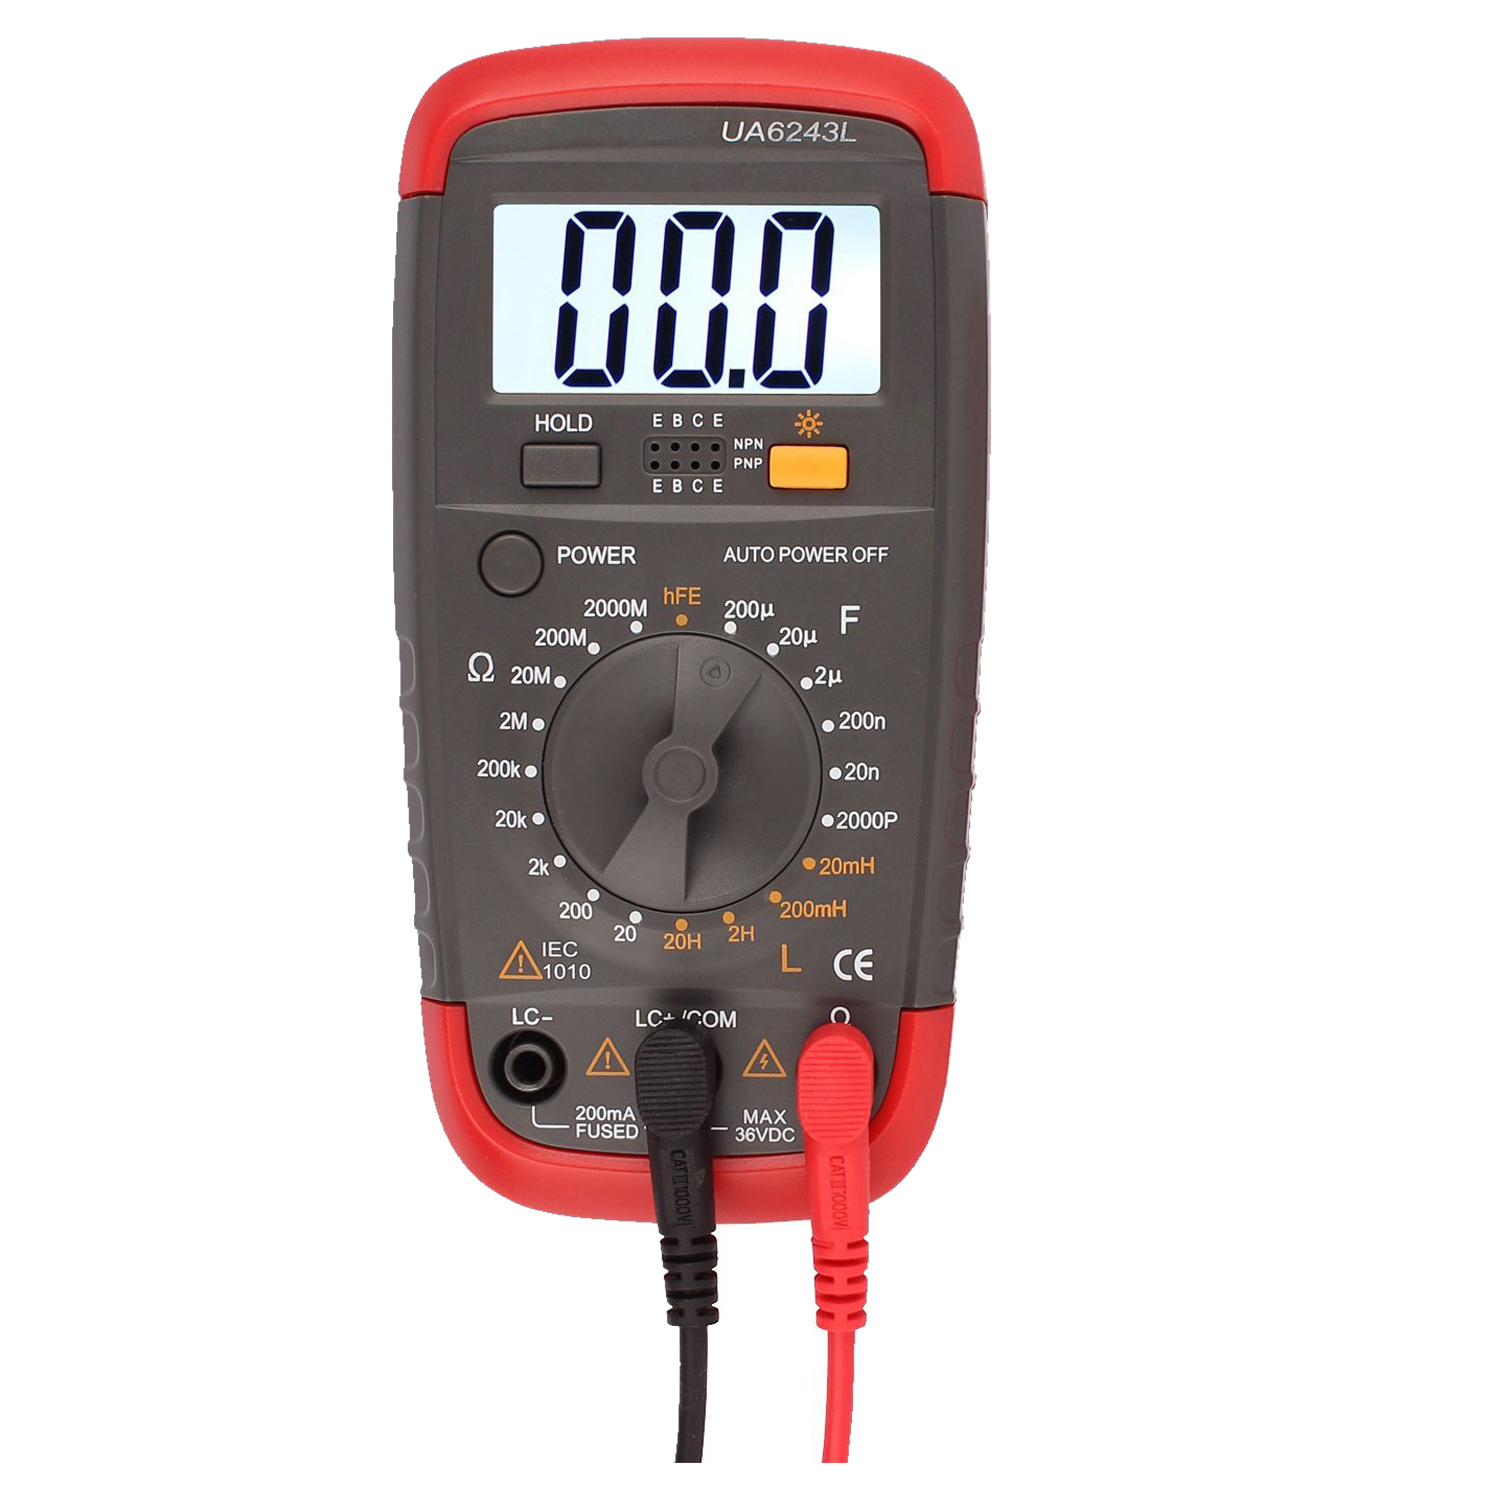 UYIGAO Digital Multimeter DMM Resistance Capacitance Inductance LCR Multi Meter Tester with Backlight hyelec ms89 2000 counts lcr meter ammeter multitester multifunction digital multimeter tester backlight capacitance inductance page 5